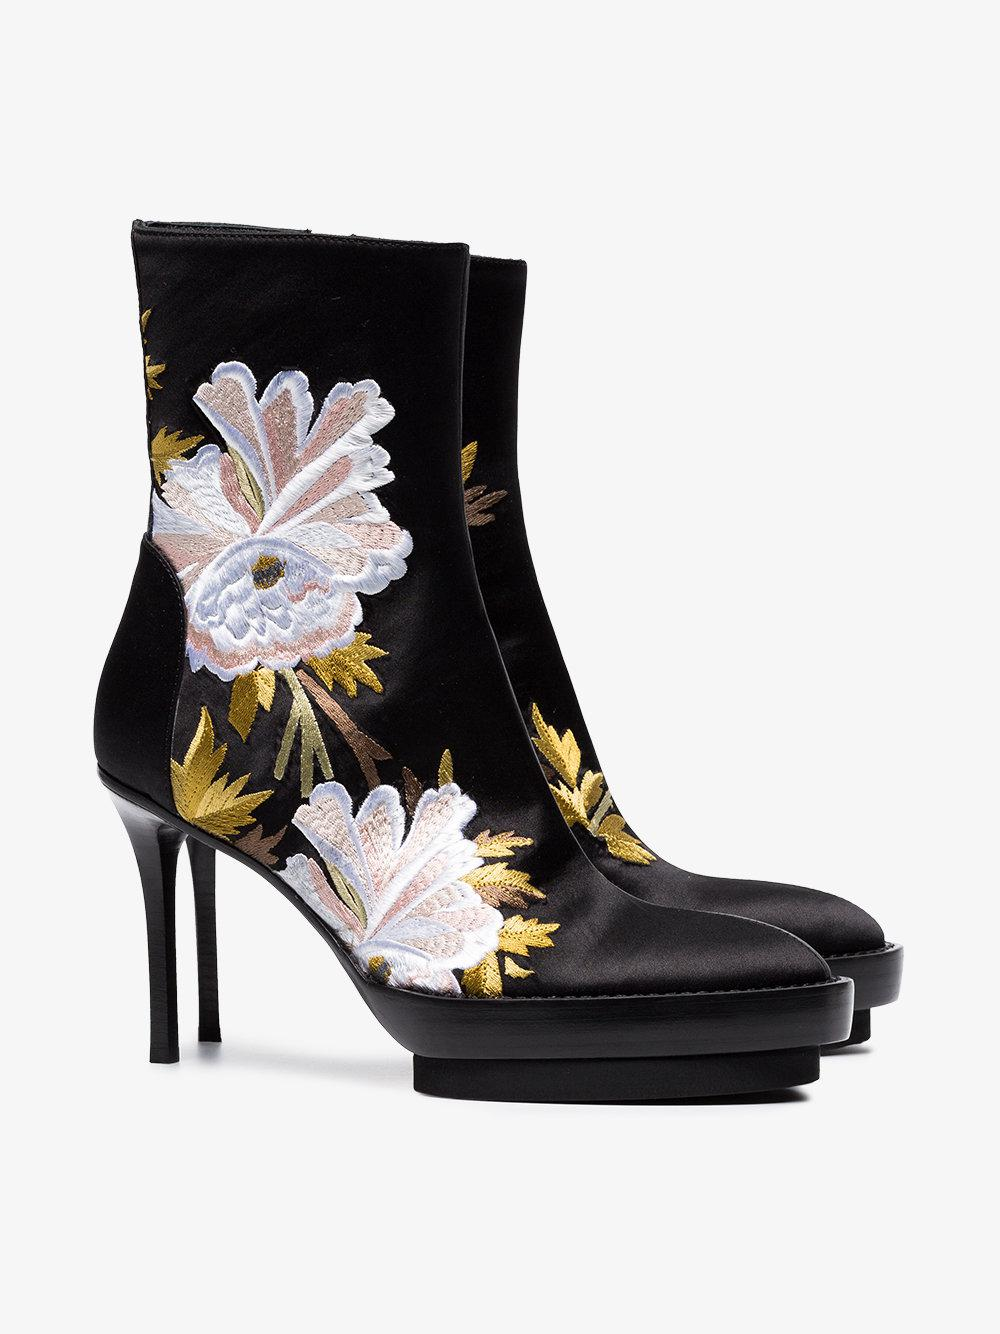 Ann Demeulemeester Silk Floral Embroidered Boots in Black